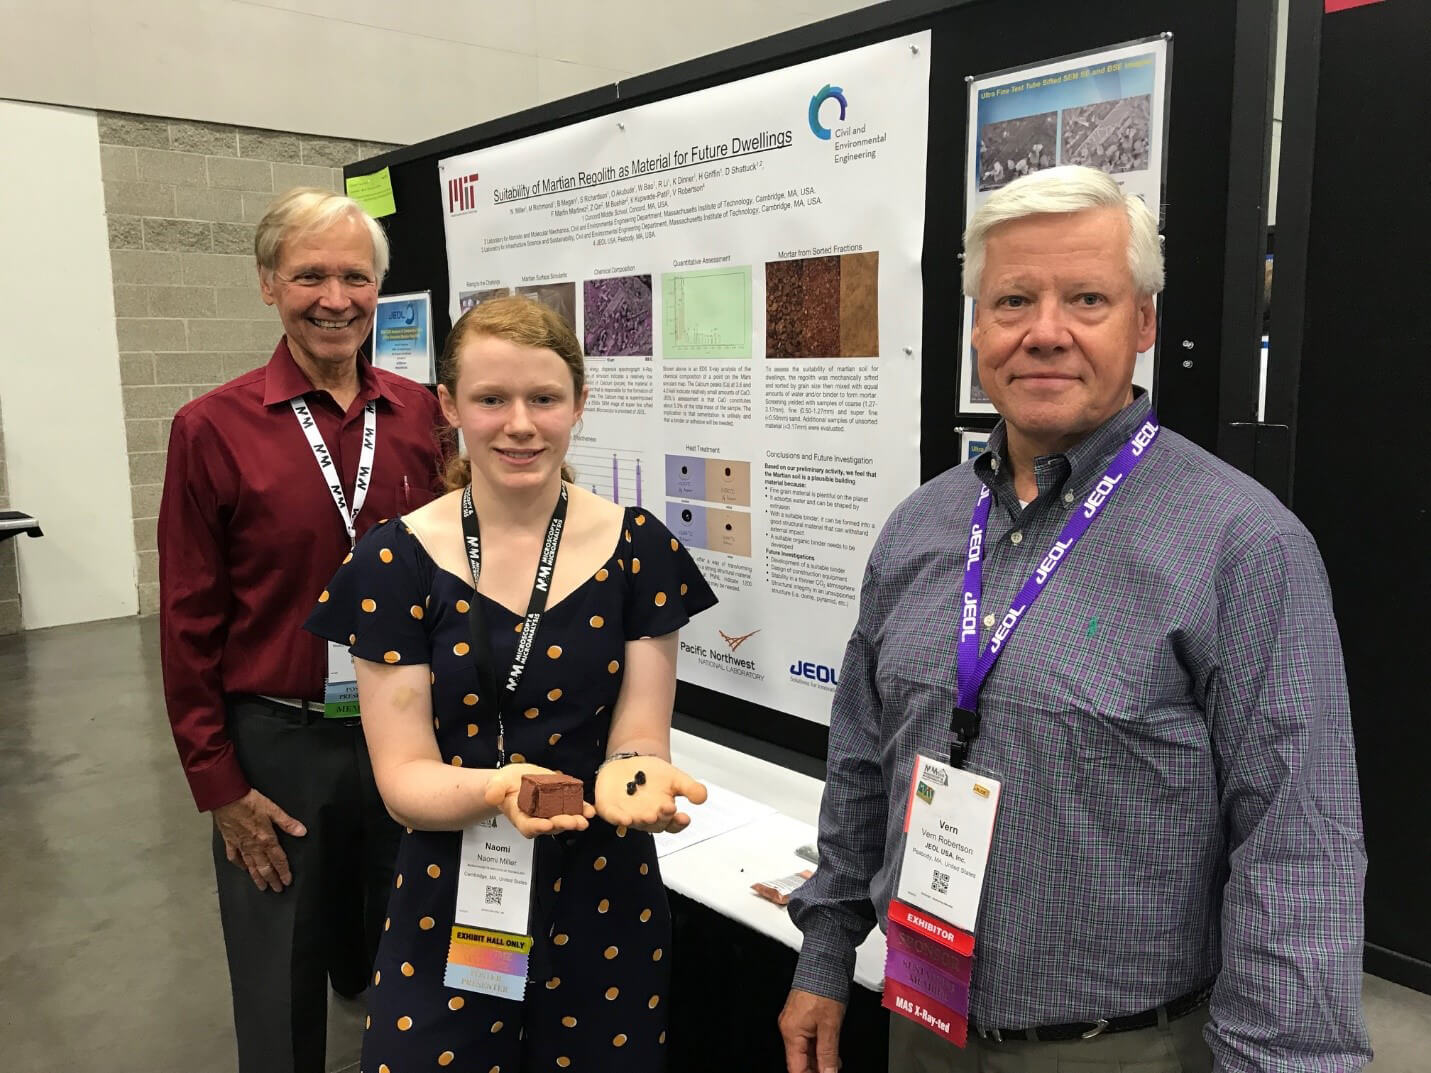 Naomi Miller holds sample of regolith and presented the findings of the CCMS-MIT research group at M&M 2019. Also in photo are her 8th grade teacher, Doug Shattuck (left) and JEOL collaborator Vern Robertson (right).